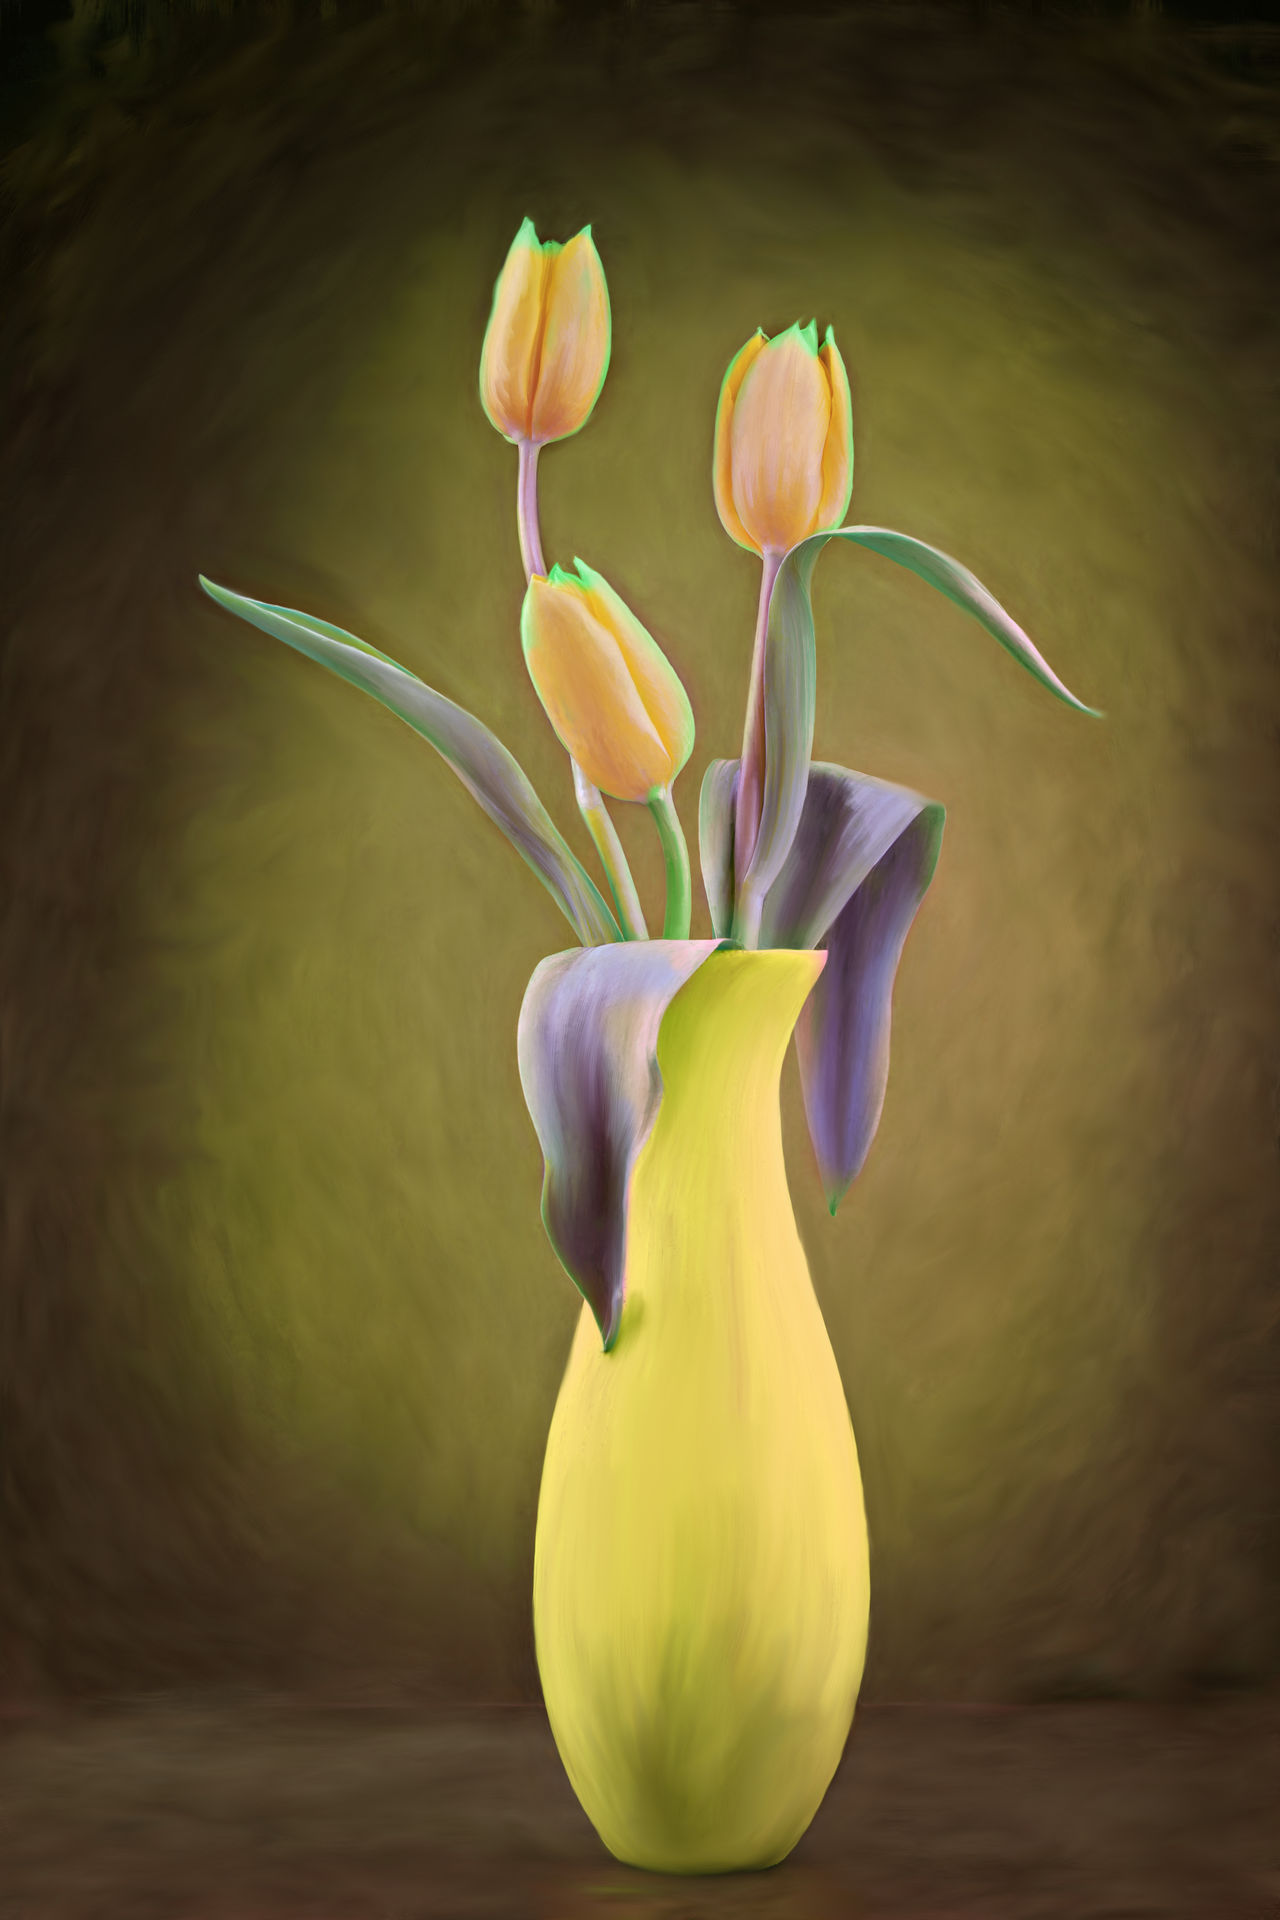 bunch of tulips in a vase on the table, a photograph with a painting filter effect Arrangement, Beautiful, Blossom, Bouquet, Bunch, Color, Flowers, Freshness, Gift, Nature, Objects, Spring, Table, Tulips, Vase Flower Gift Painting Plant Still Life Tulips Yellow